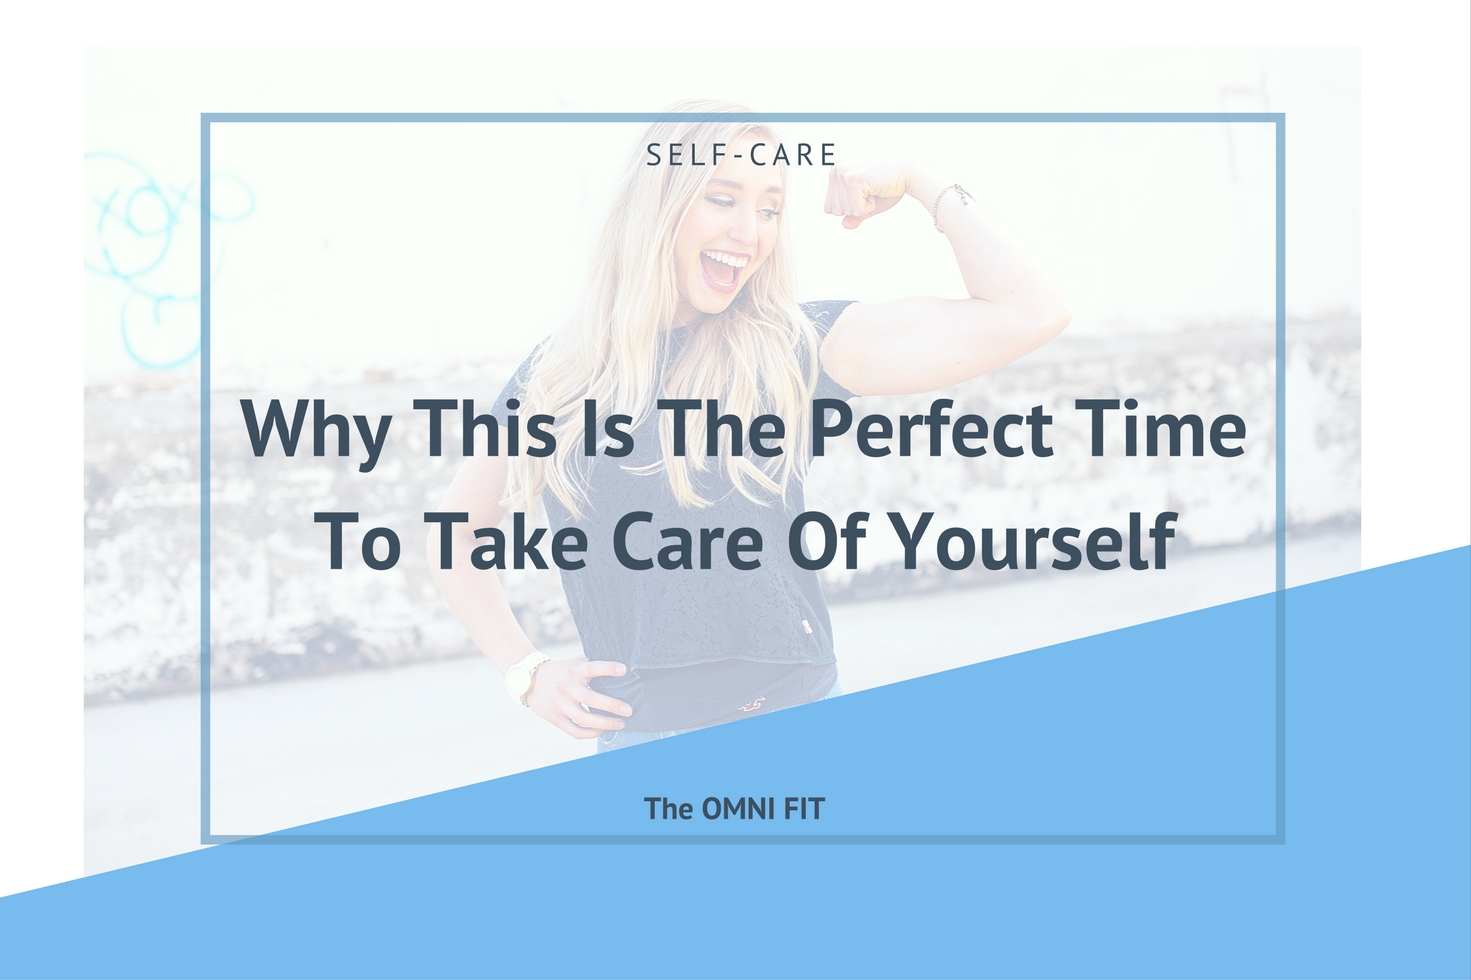 Why This Is The Perfect Time To Take Care Of Yourself